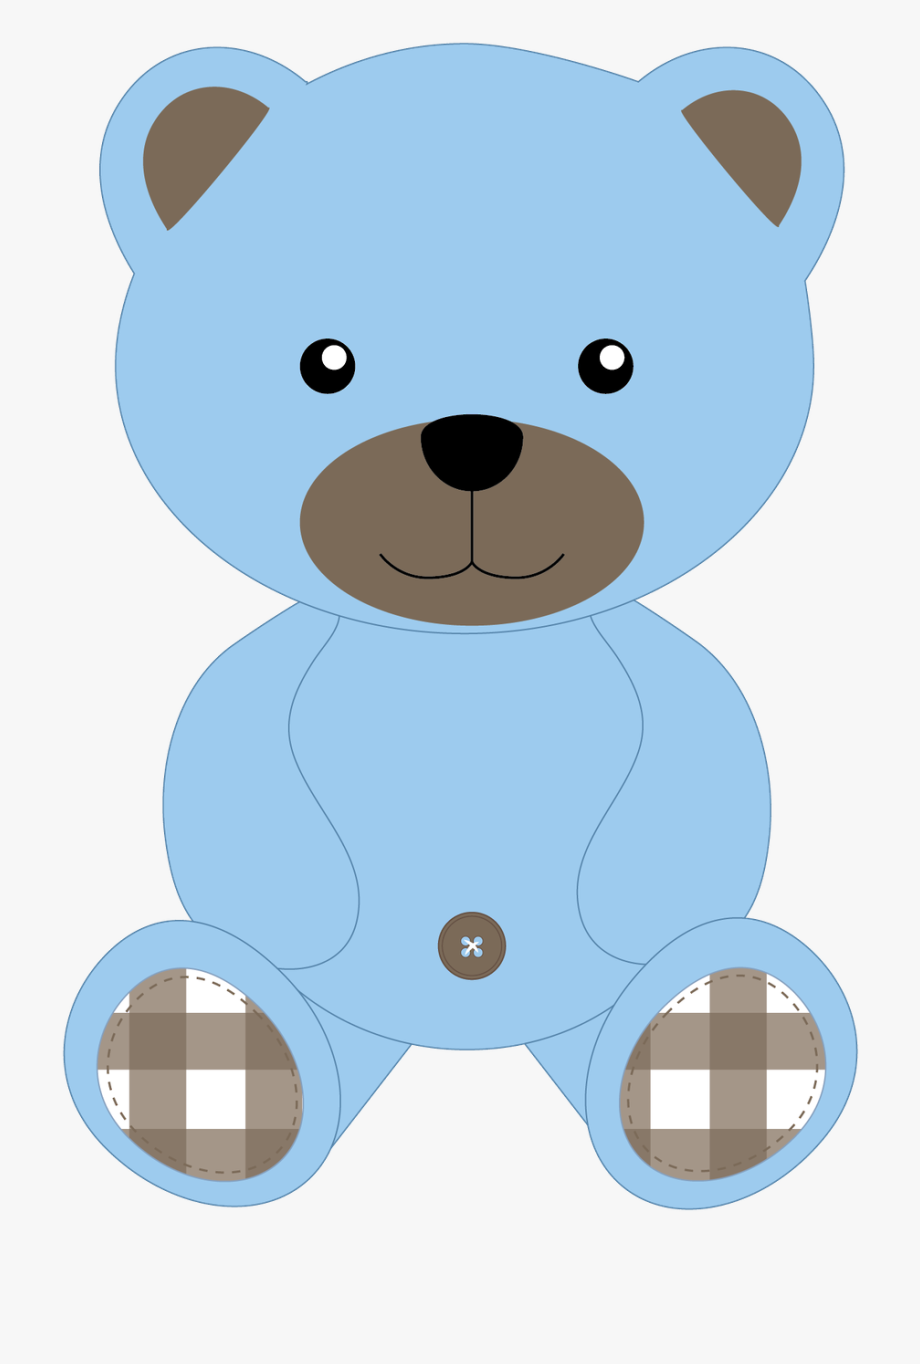 Blue teddy bears clipart graphic royalty free download Ear Clipart Teddy Bear - Teddy Bears Cartoon Png #131043 - Free ... graphic royalty free download